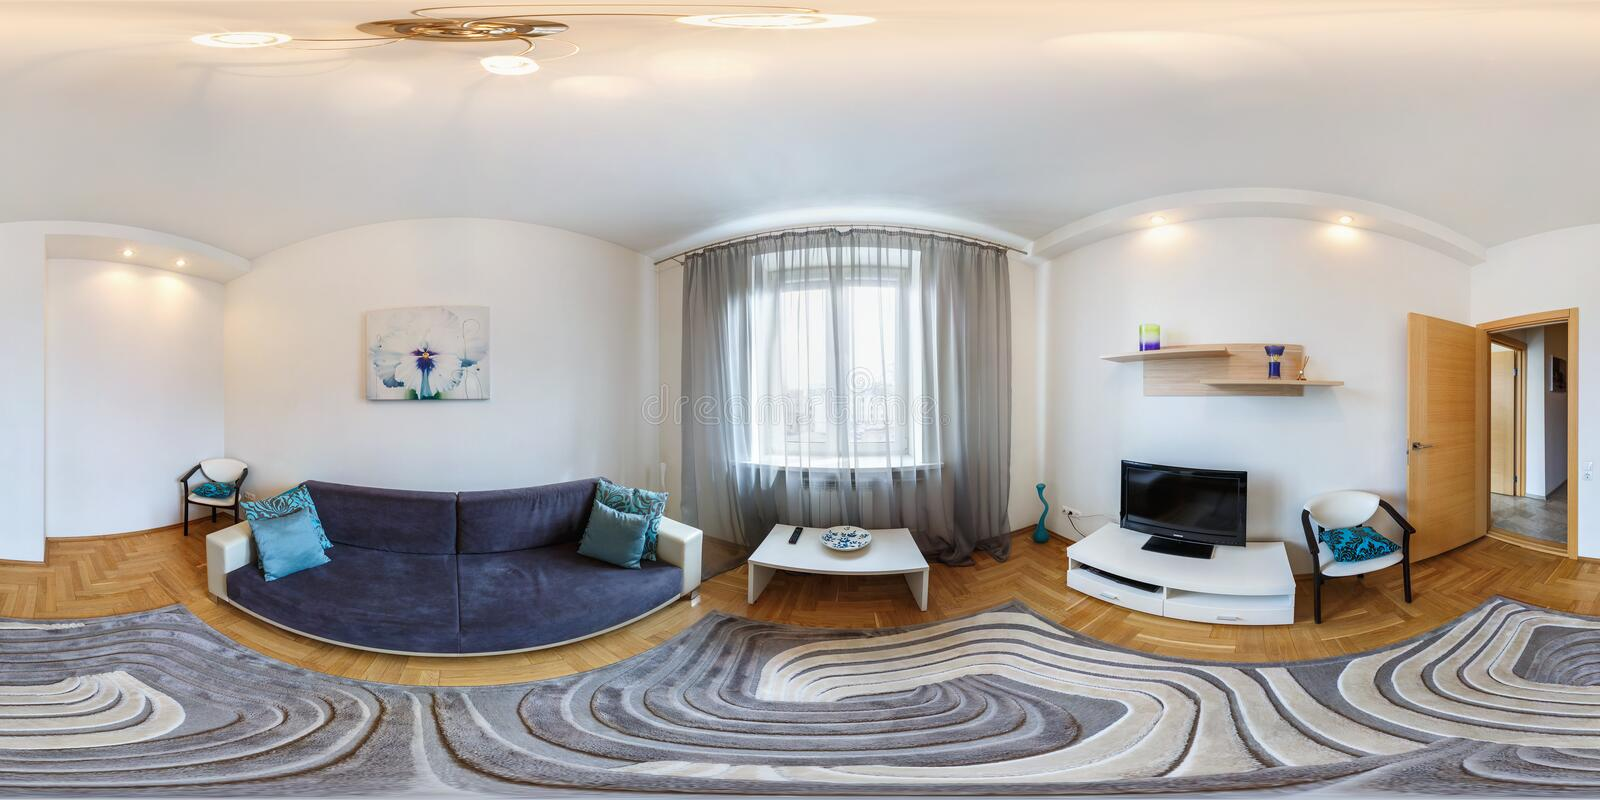 MINSK, BELARUS - MARCH 2, 2013: Full spherical 360 degrees seamless panorama in equirectangular equidistant projection, panorama. In interior guestroom hall in stock image